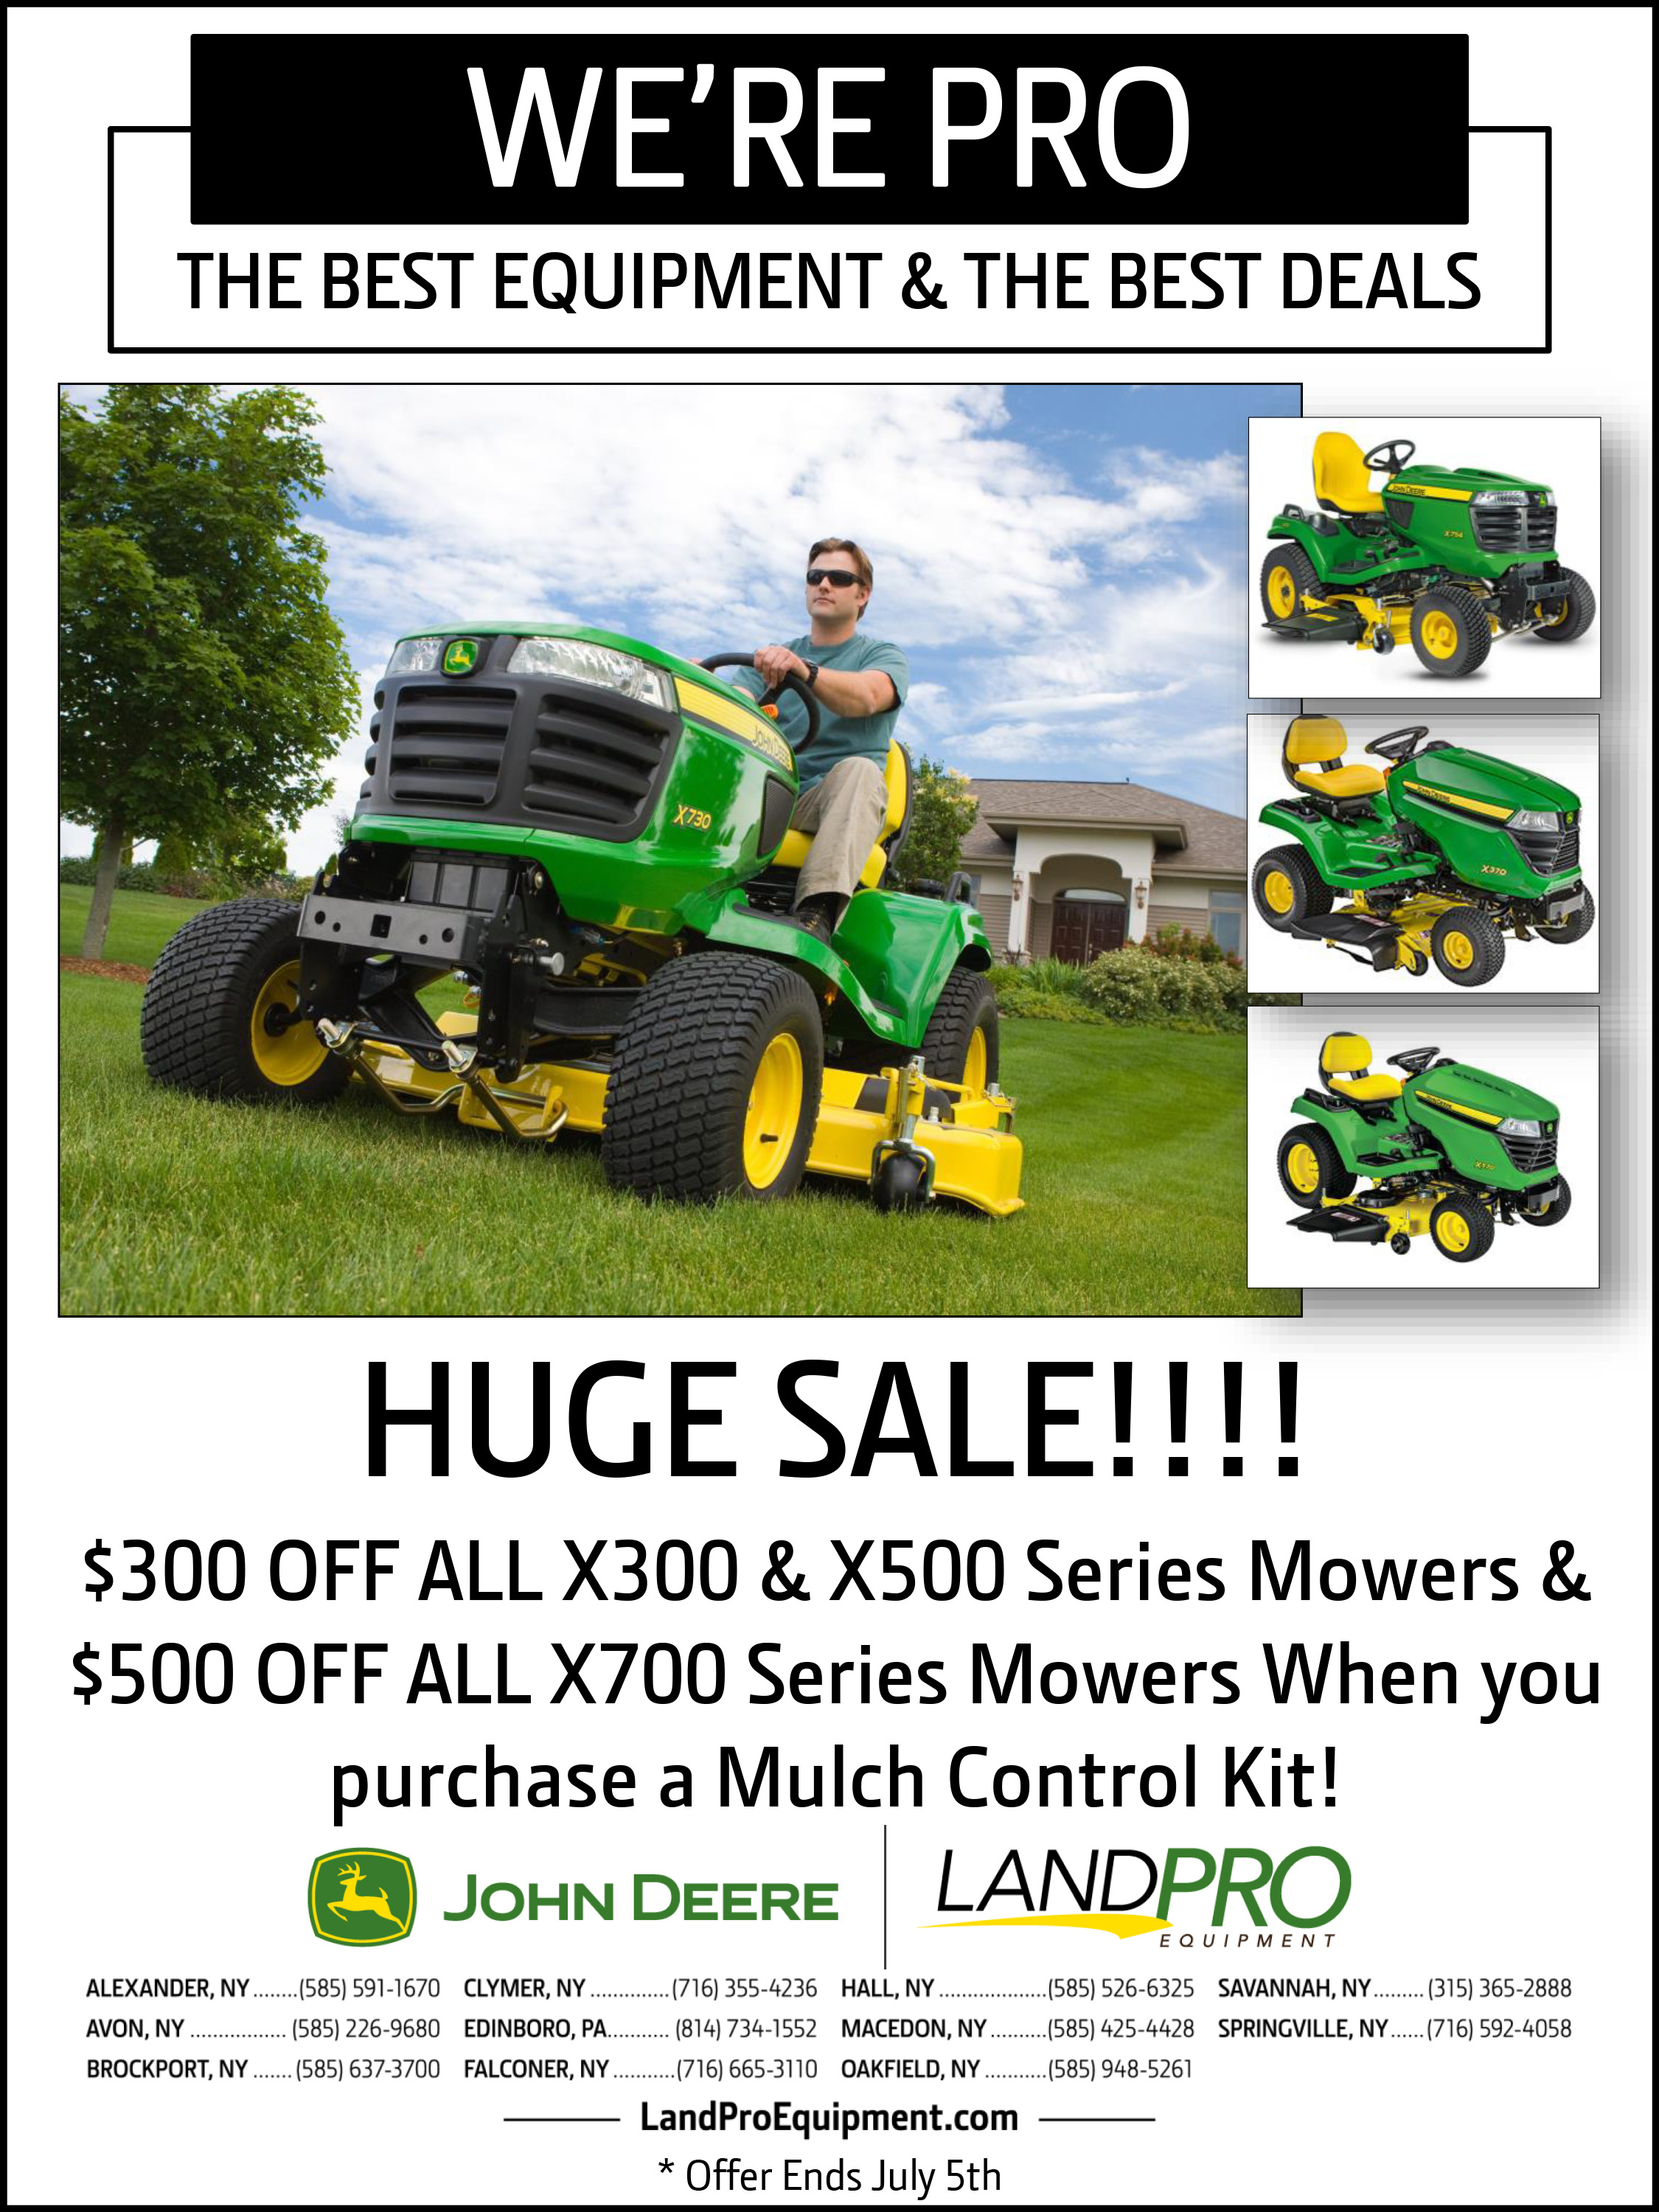 Huge Sale!!! $300 Off X300 & X500 Series Mowers | $500 Off All X700 Series Mowers